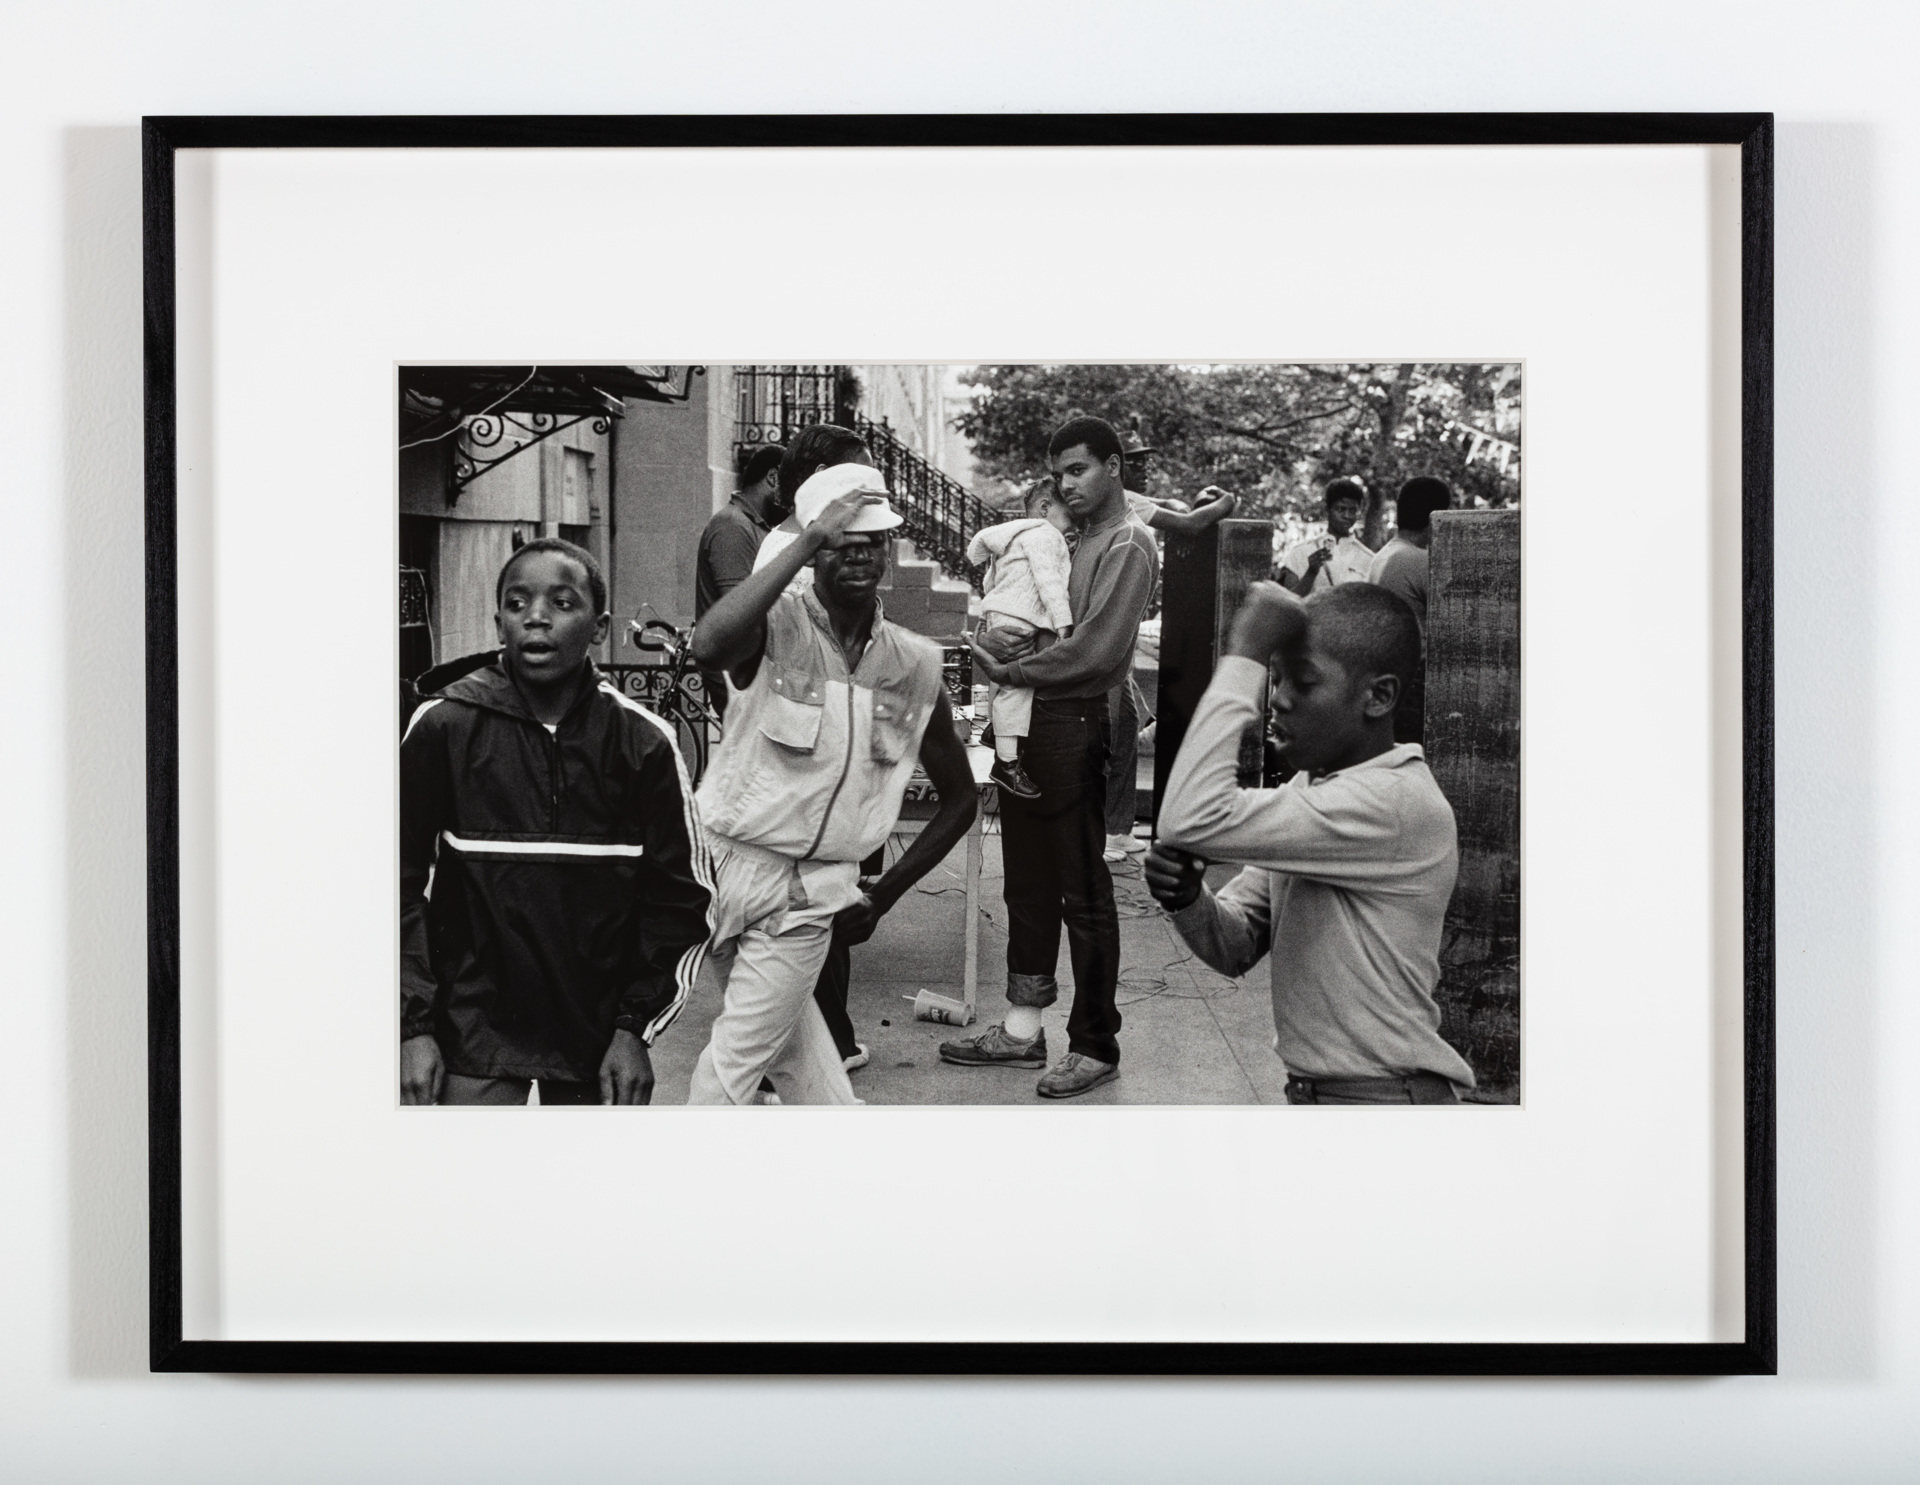 Martine Barrat, You have to be born to have any type of title (Harlem), 1984, gelatin silver print, 16 x 20 in. 26.5 x 20.5 in. Ed. 5